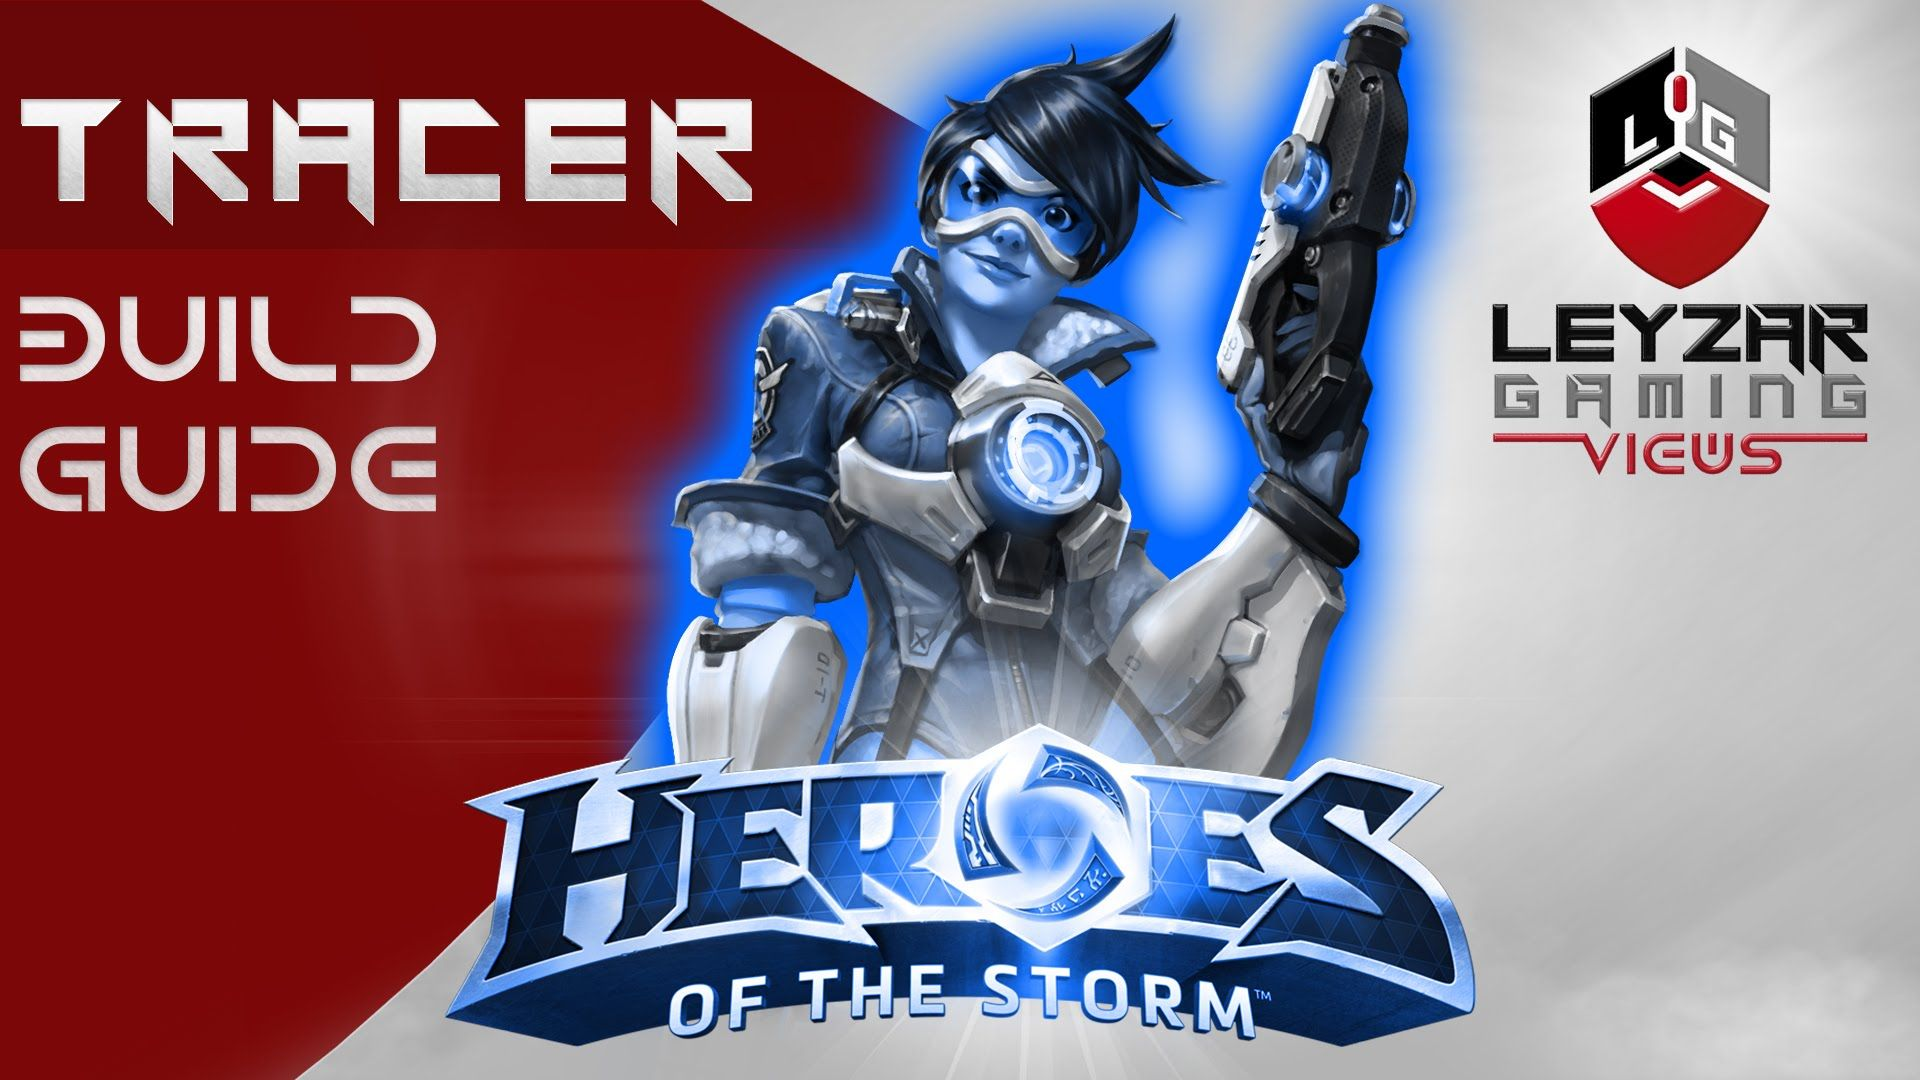 Heroes Of The Storm Gameplay Tracer Build Guide Tutorial Hots Hero Review Heroes Of The Storm Hot Hero Storm » buying quality build guides 6 7. tracer build guide tutorial hots hero